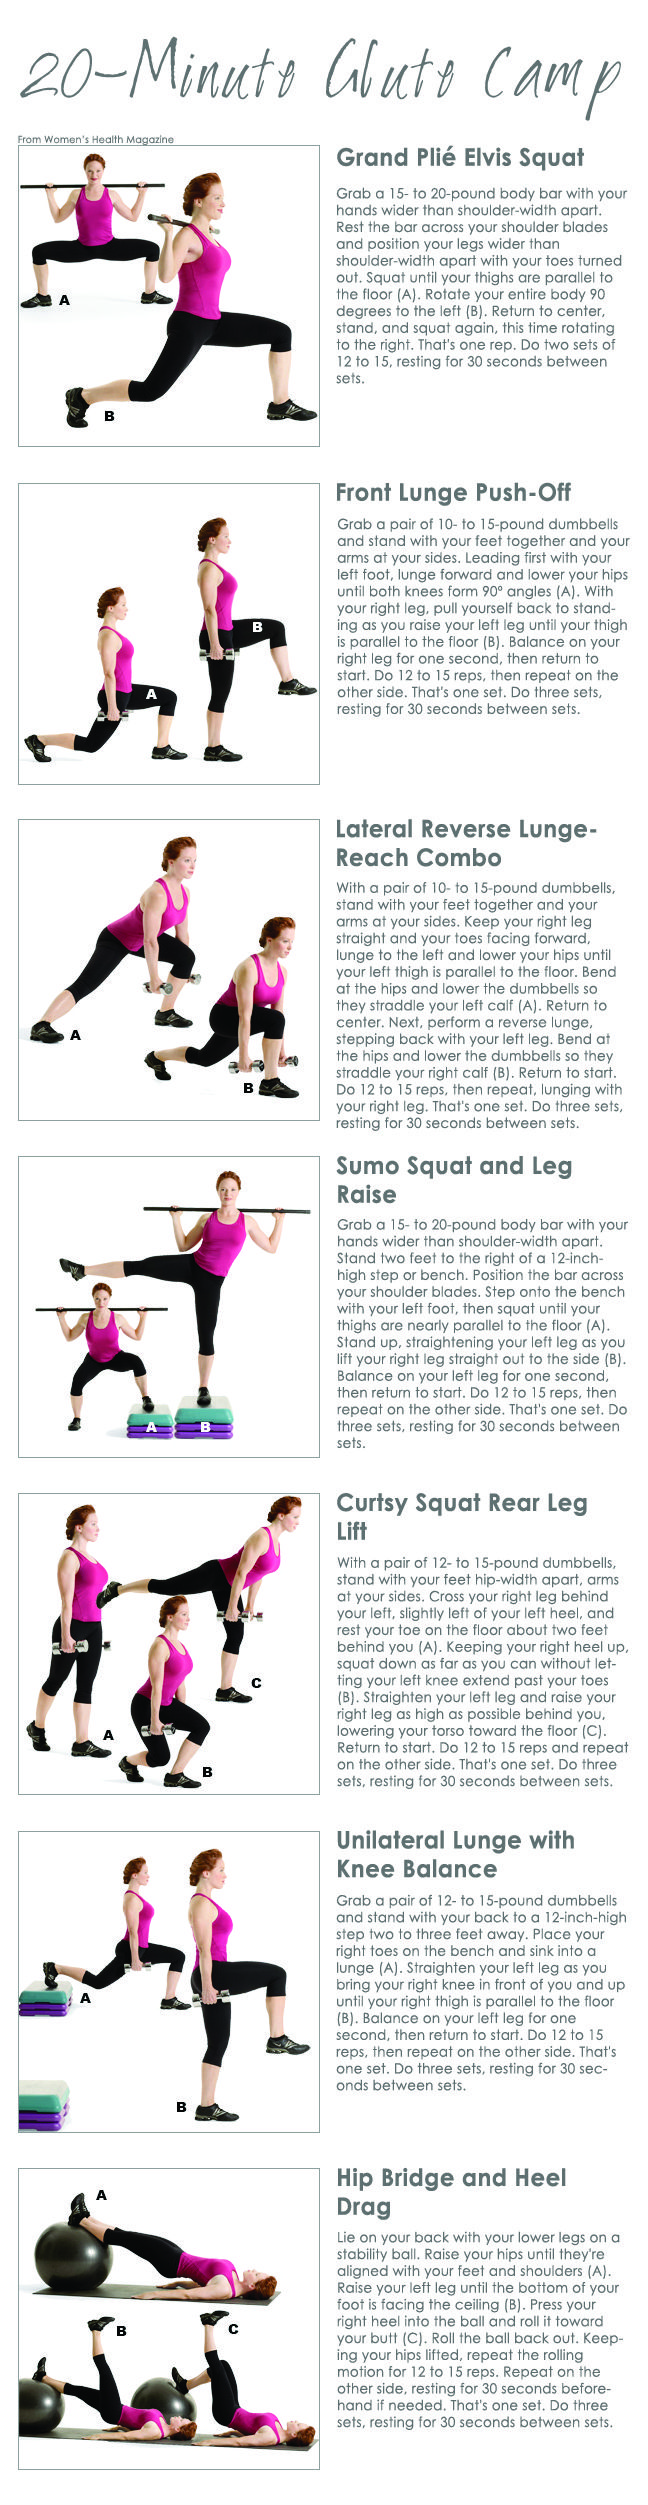 20-Minute Glute Camp from Women's Fitness Magazine Don't forget dead lifts and squats ladies!